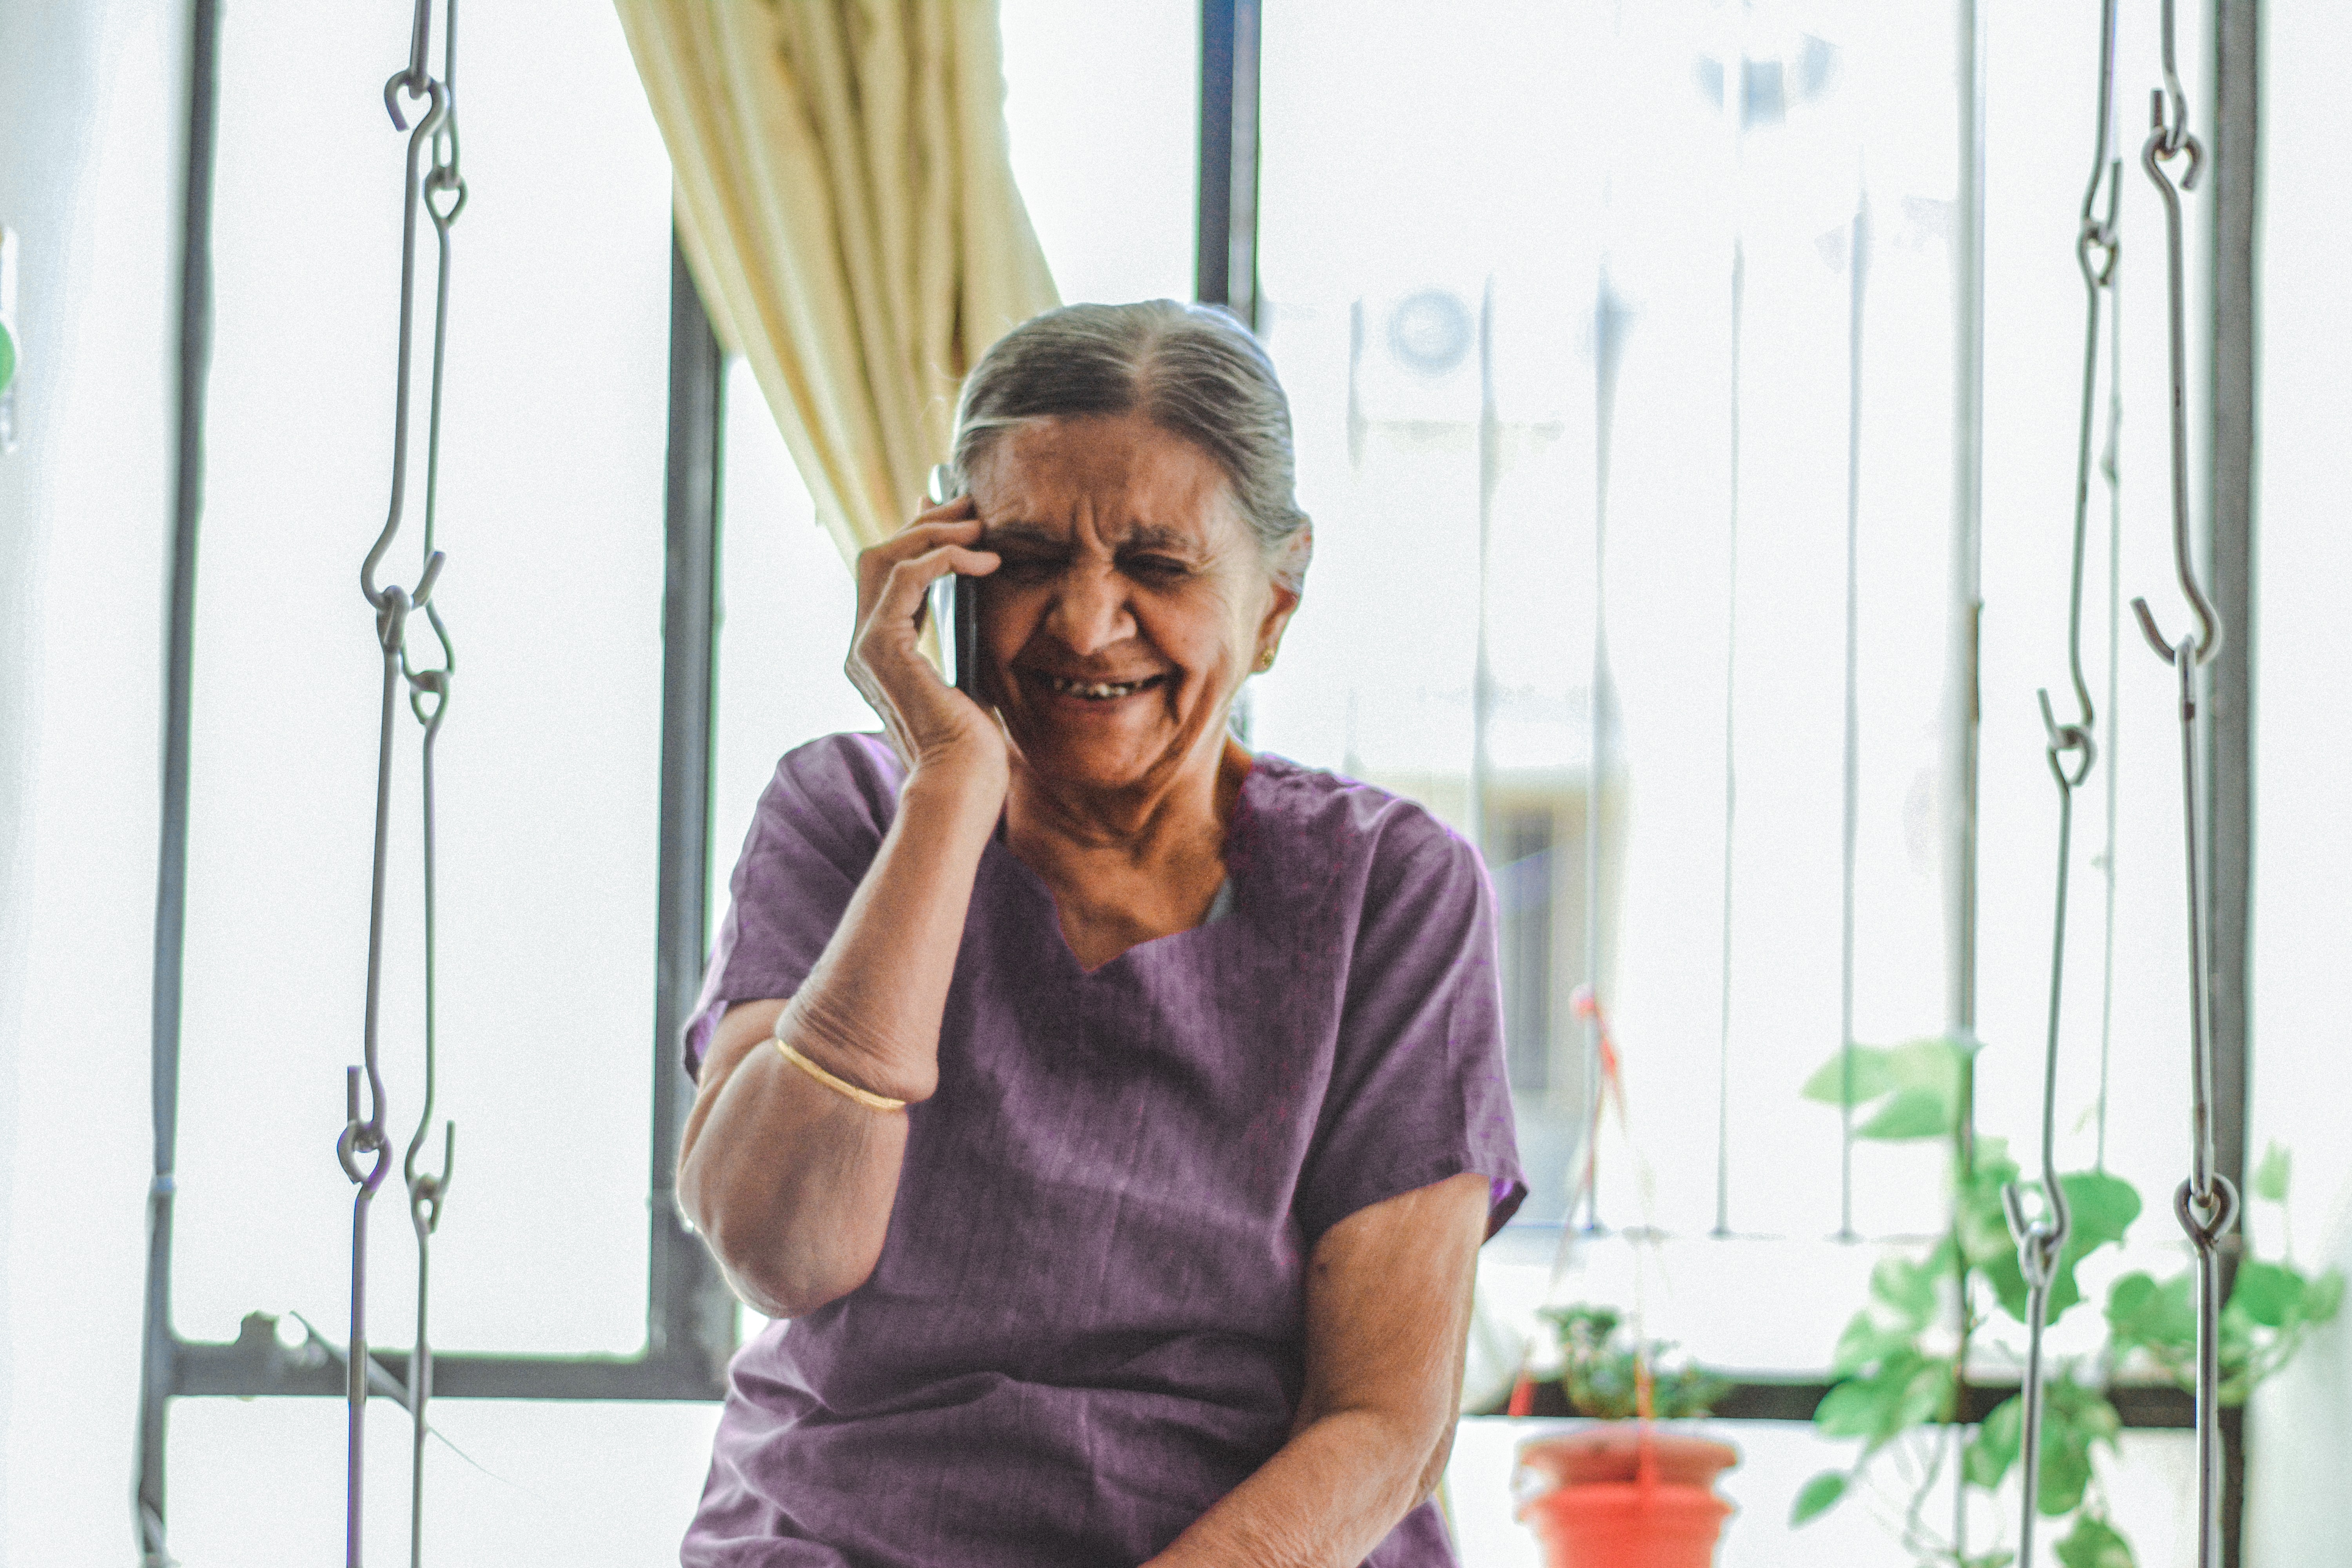 caregiver talking on phone support call